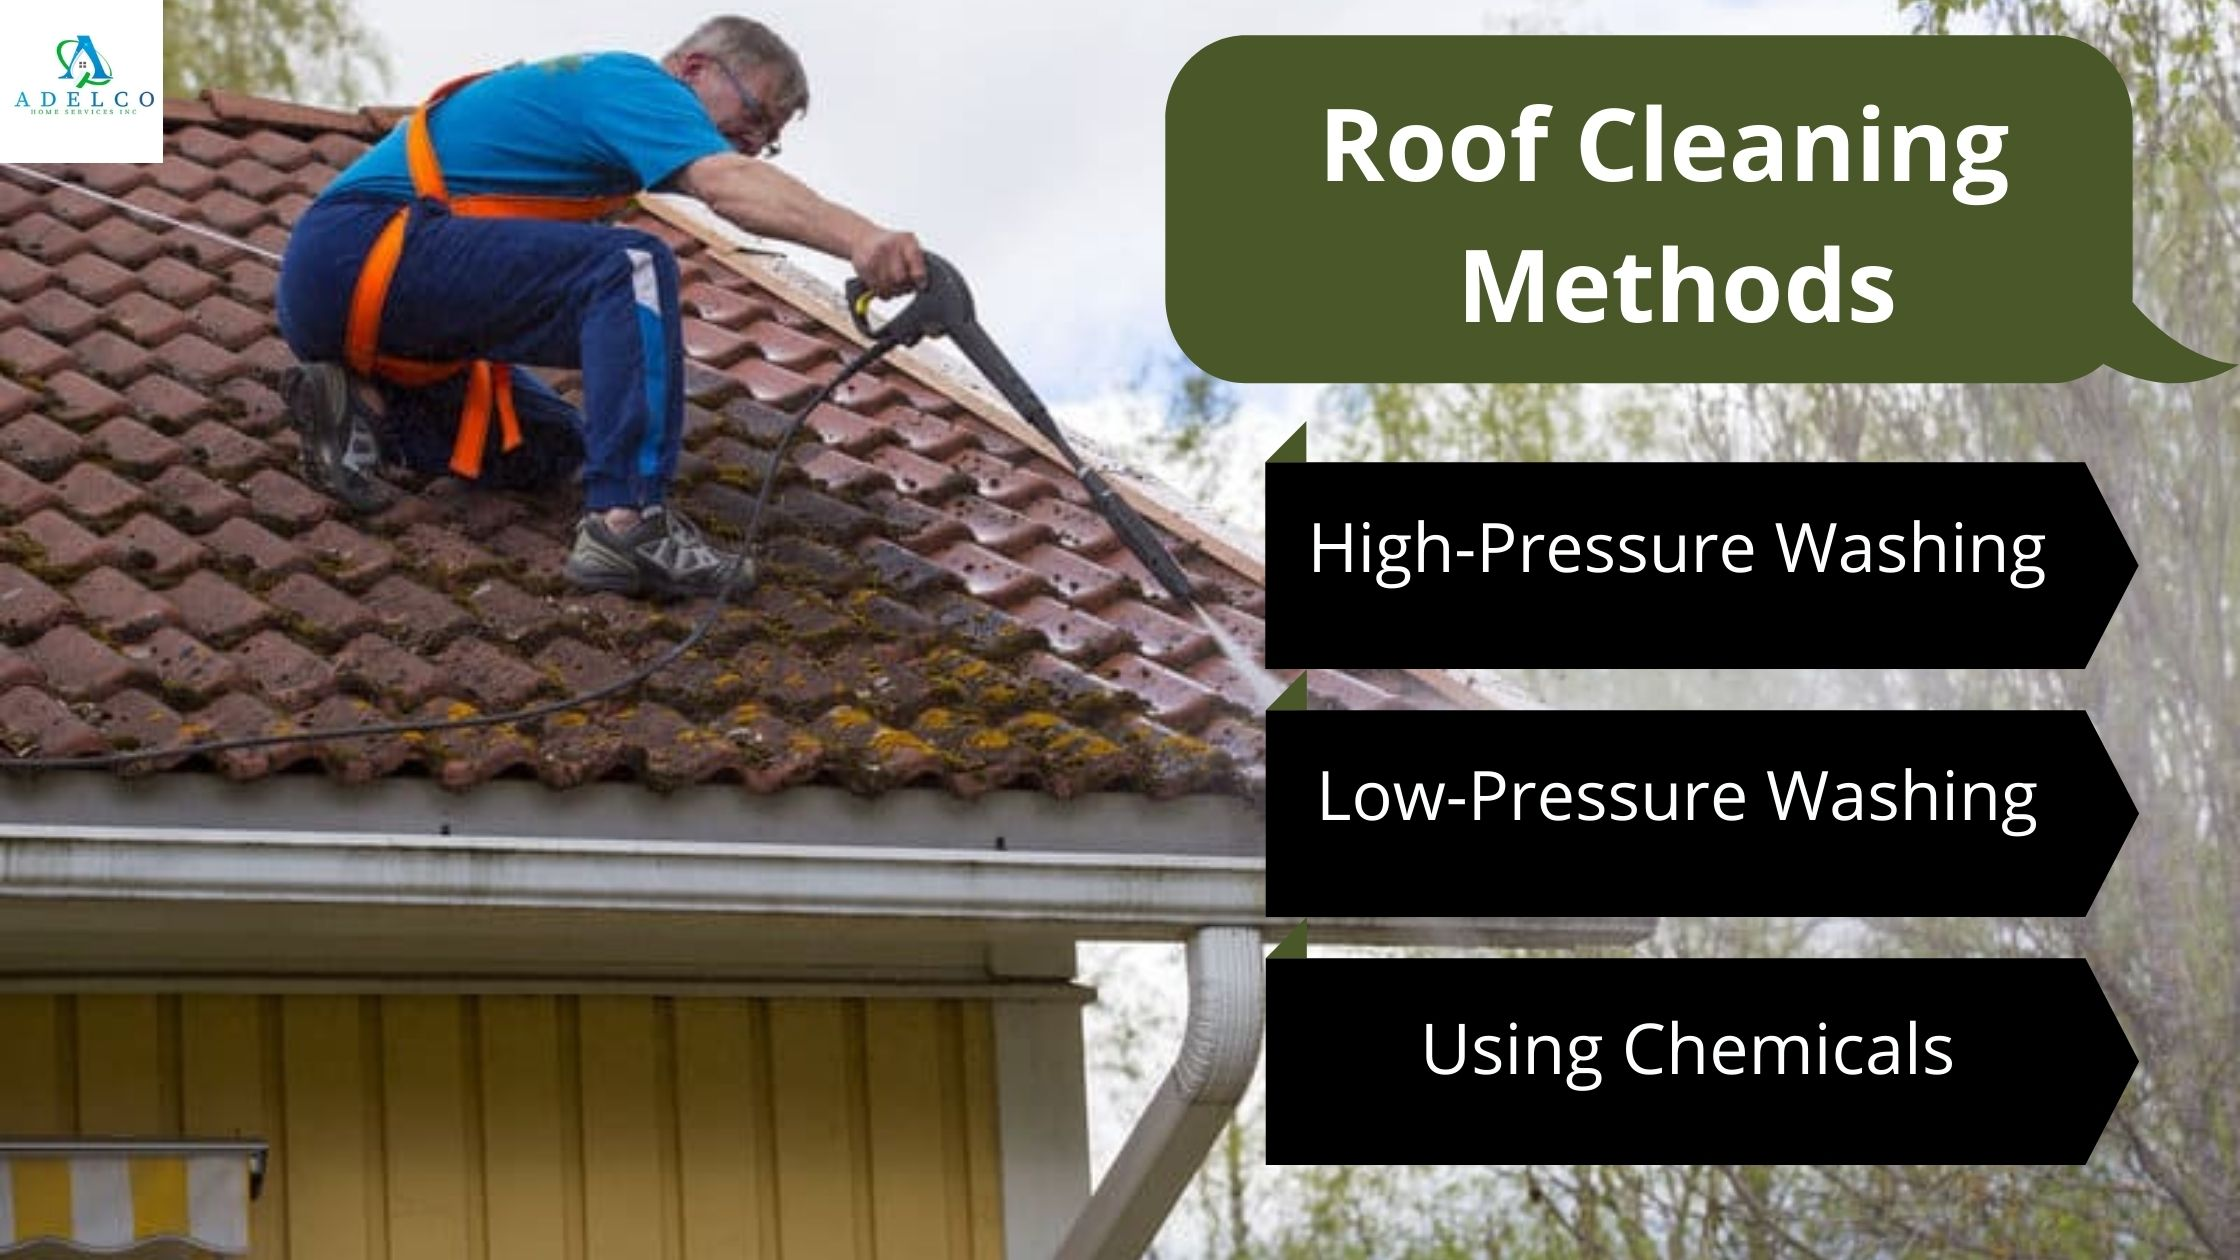 Methods of Roof Cleaning